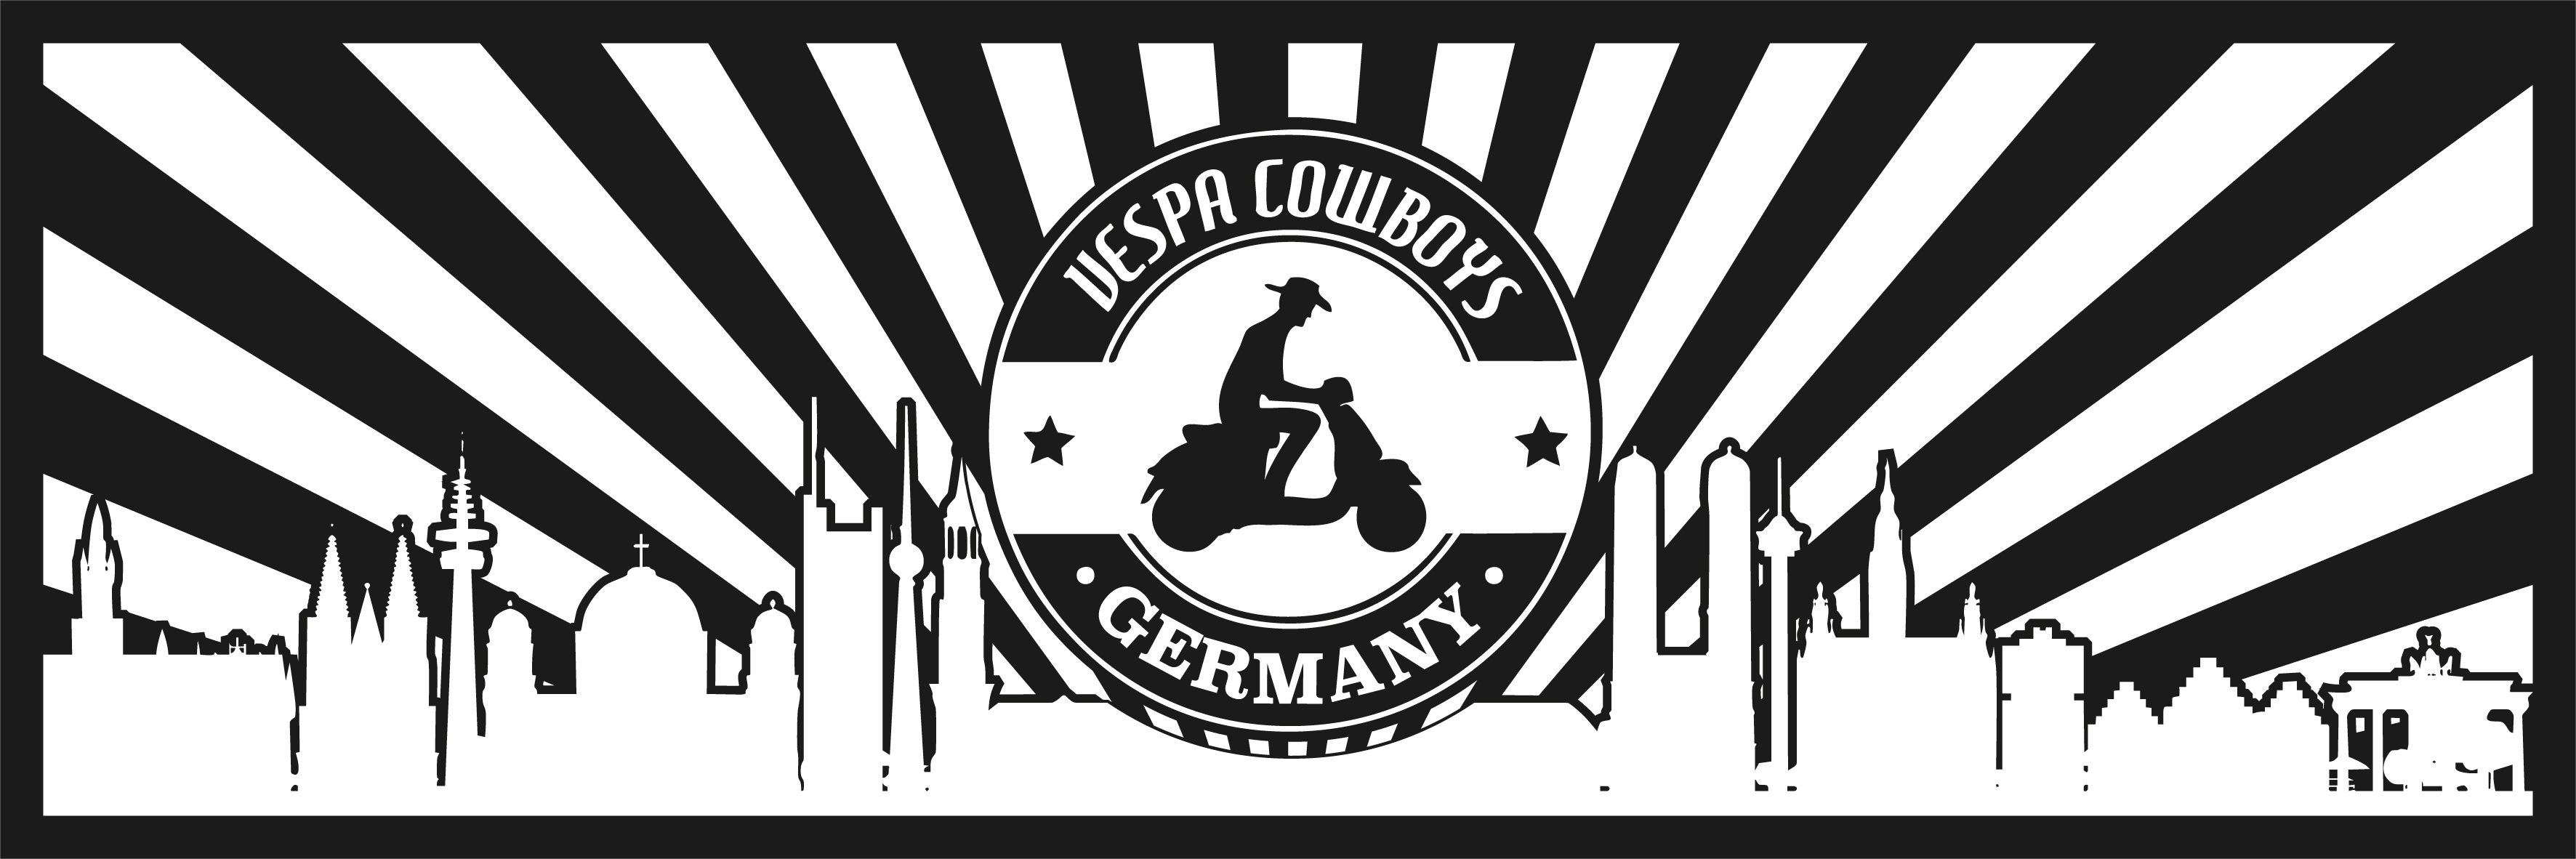 VESPA COWBOYS GERMANY